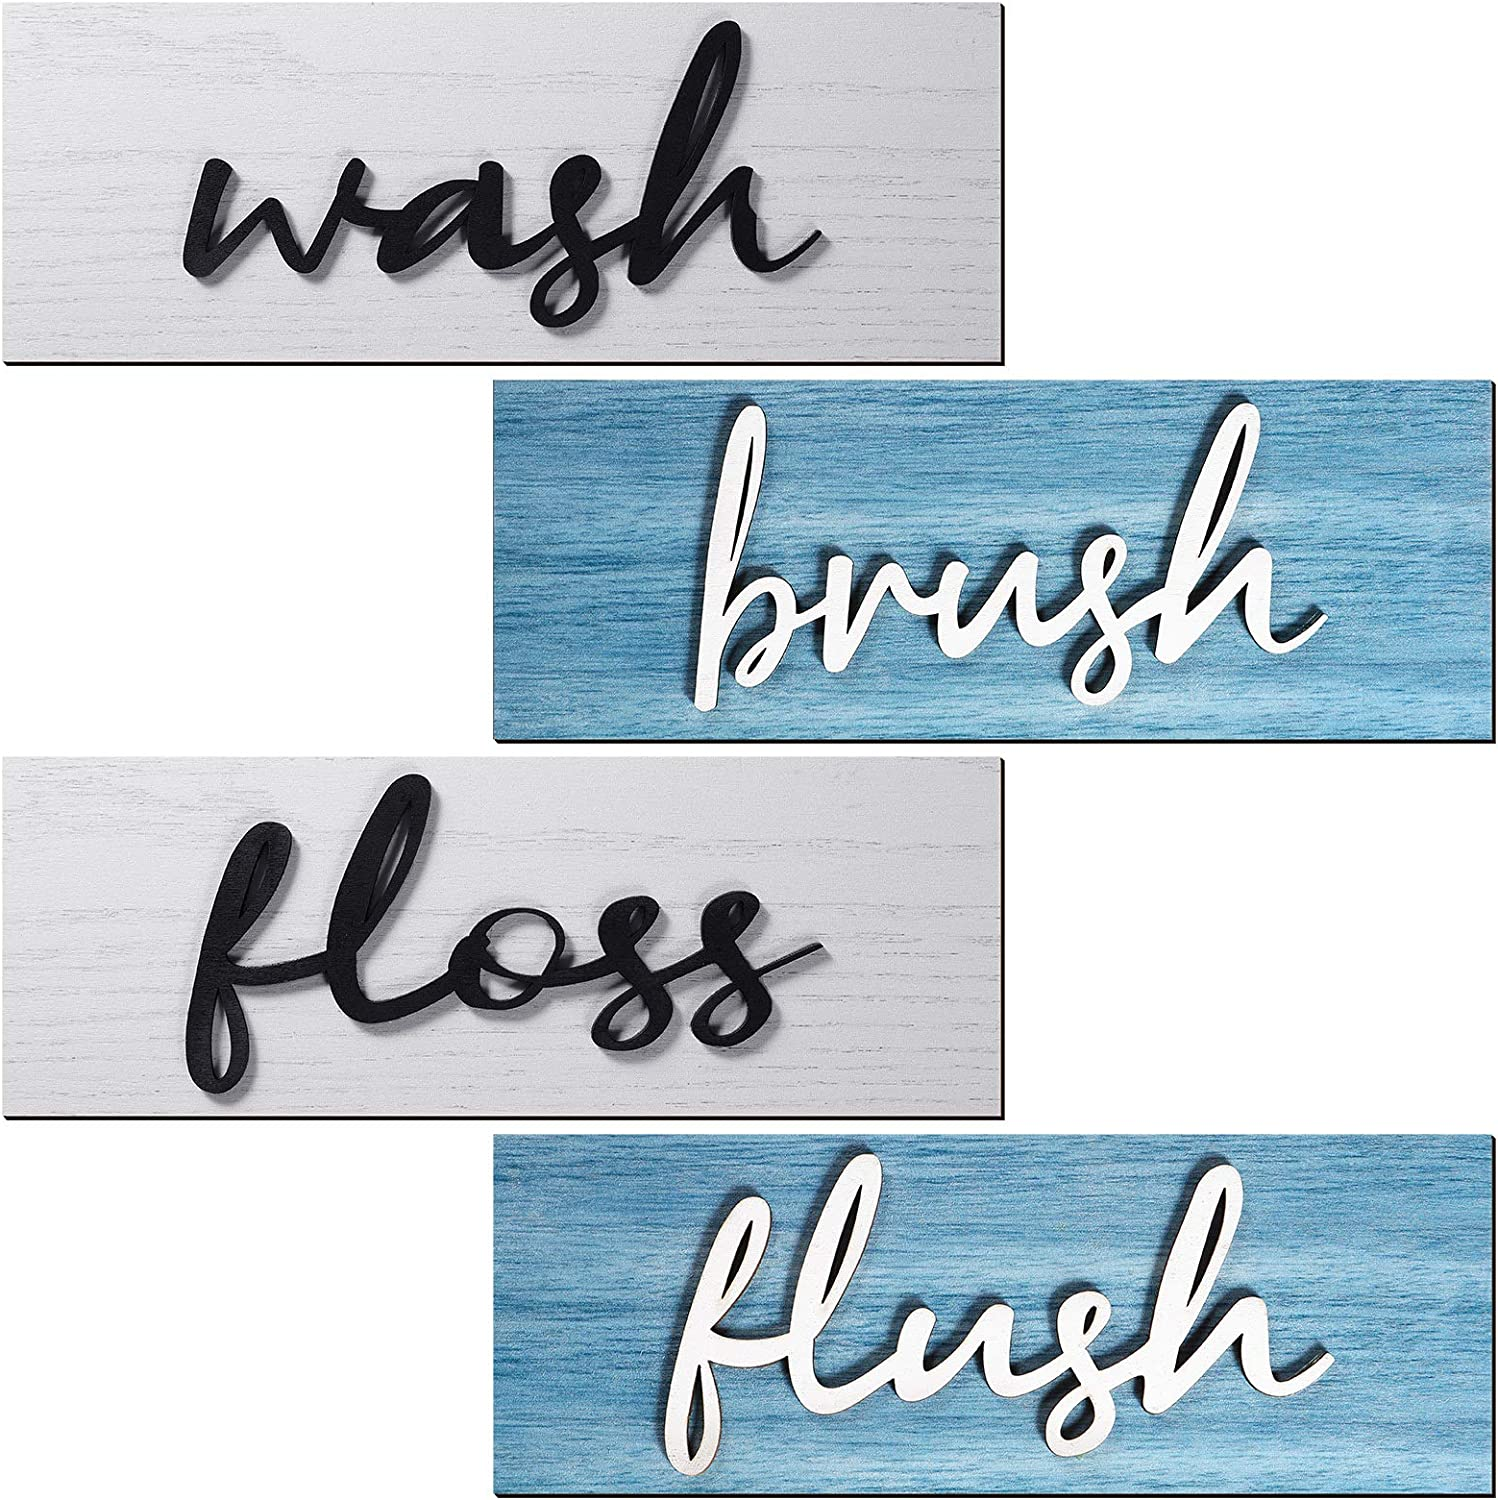 4 Pieces Farmhouse Bathroom Wall Decors Wash Brush Floss Flush Signs Rustic Hanging Wooden Signs Primitive Bathroom Wall Arts Vintage Wooden Decorations for Home Laundry Room Bathroom (Blue, White)